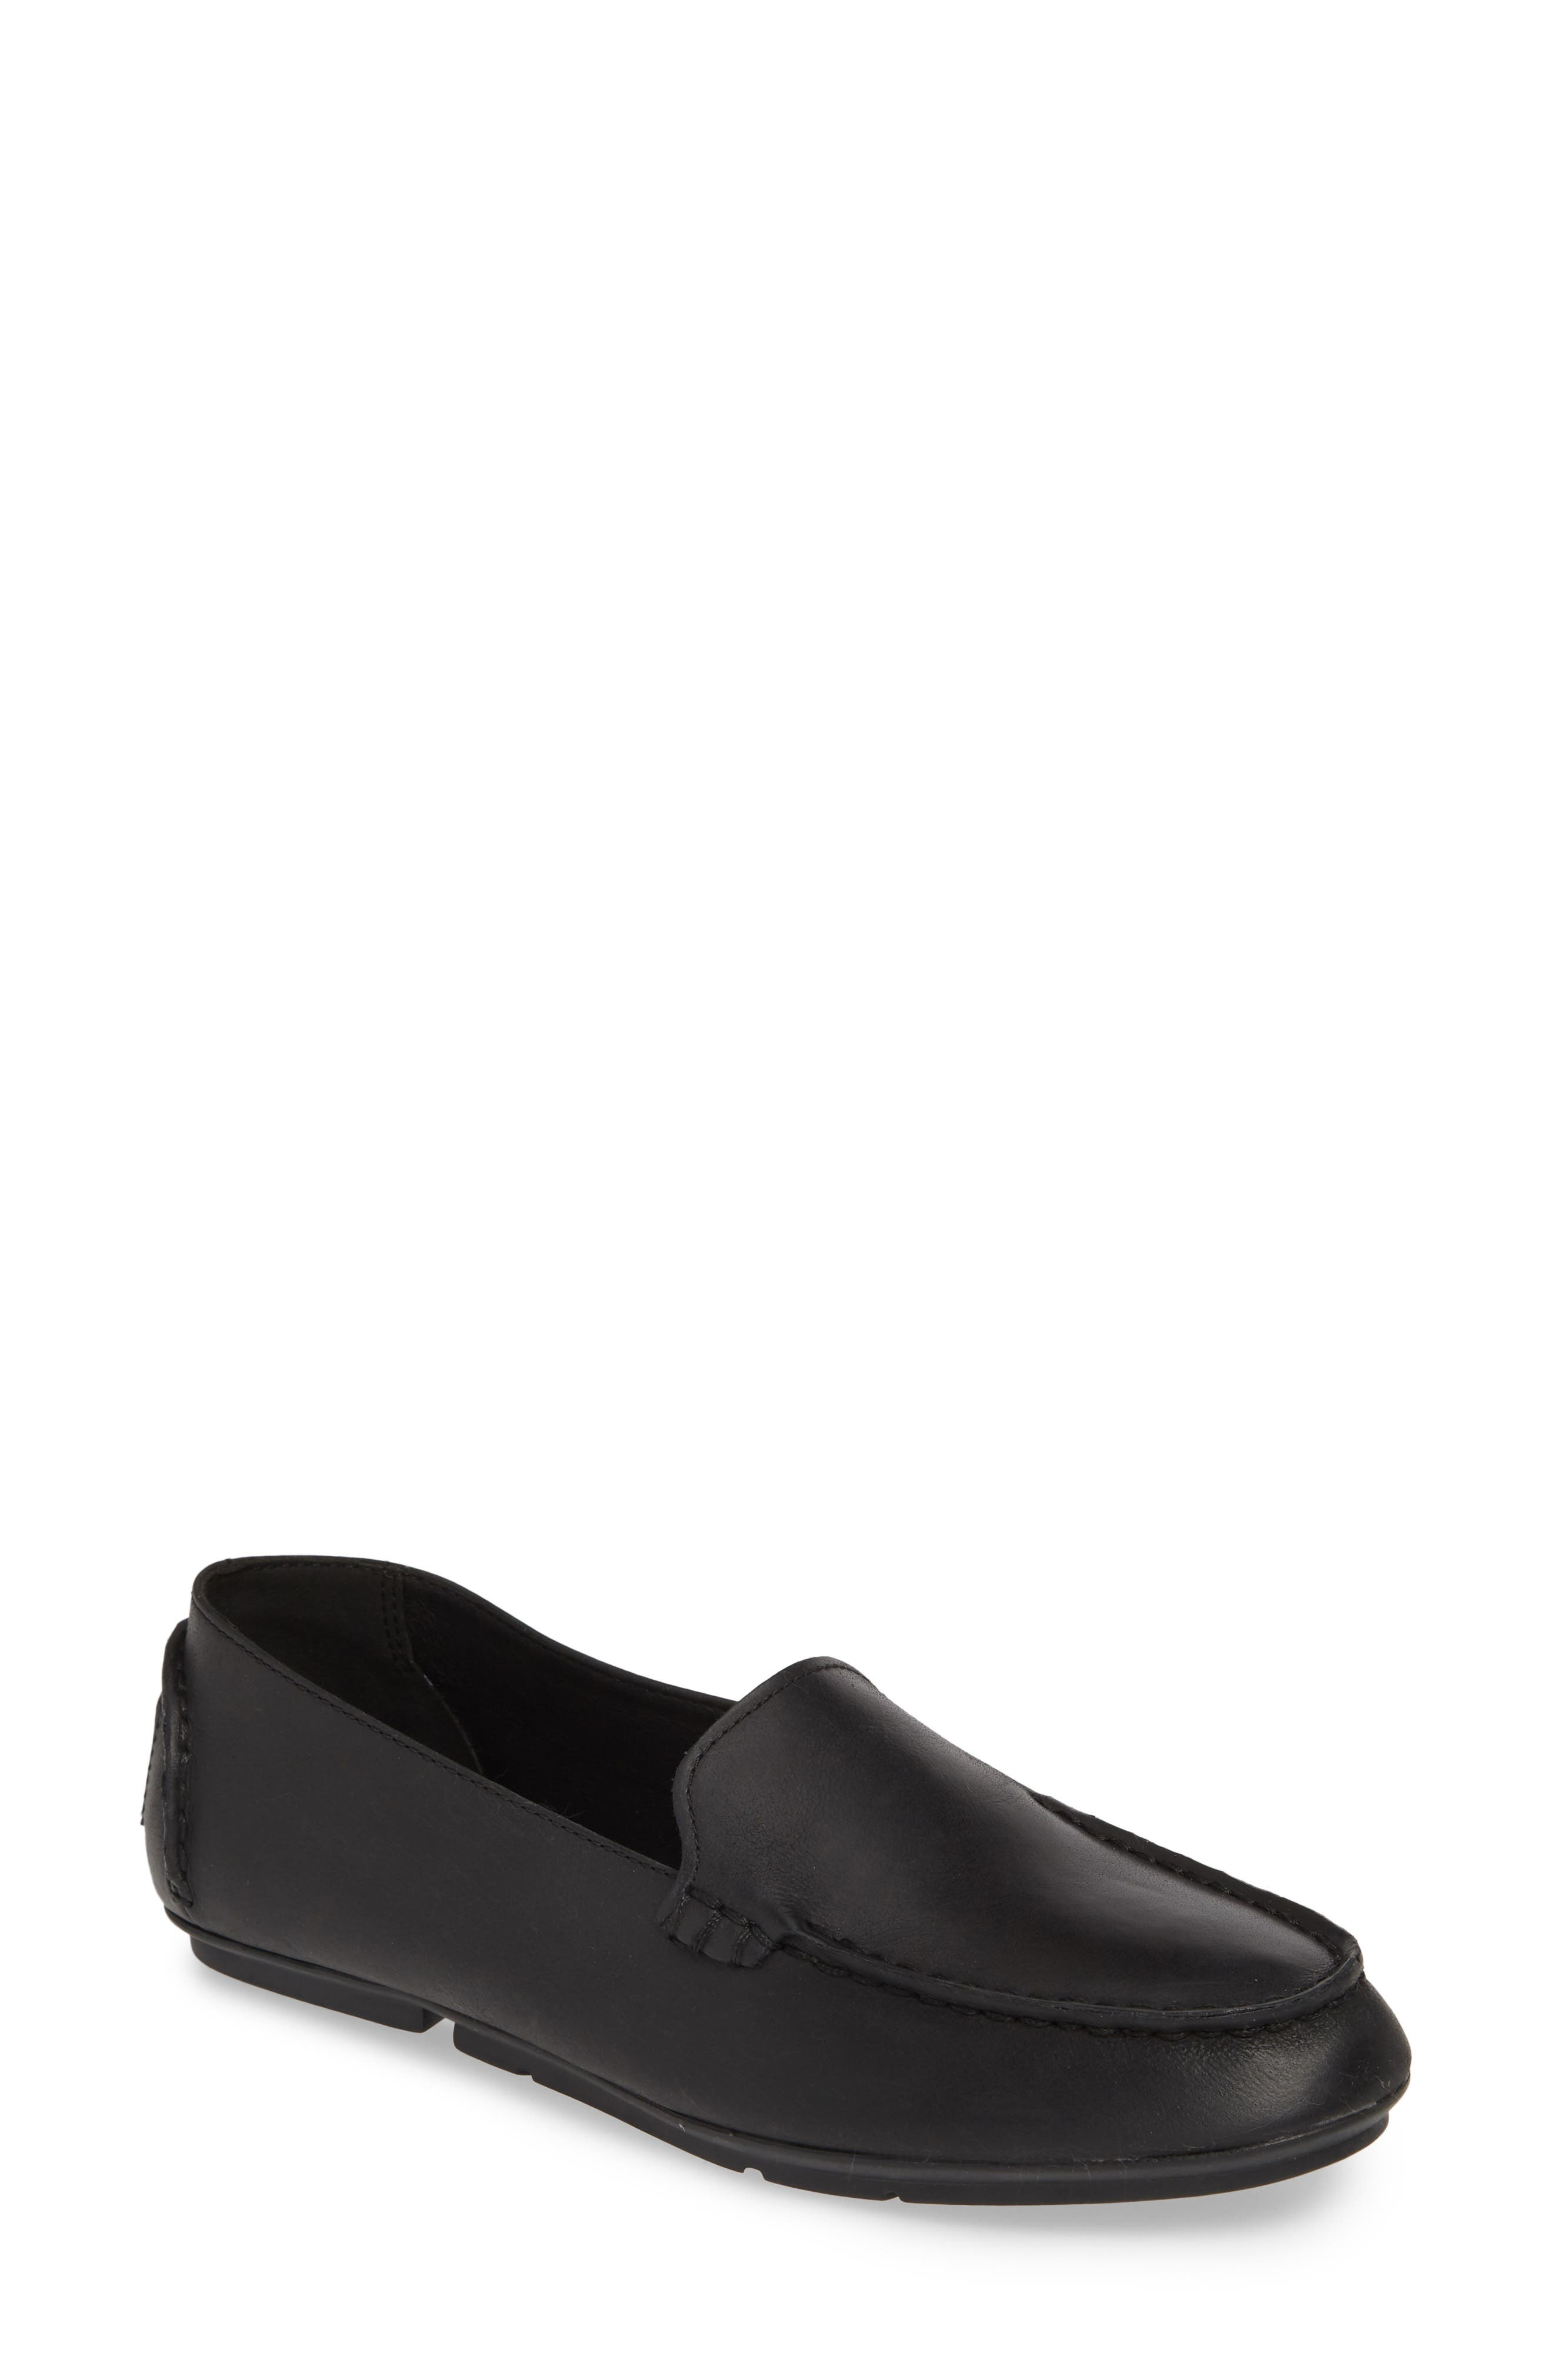 Top Sider Bay View Loafer, Main, color, 001